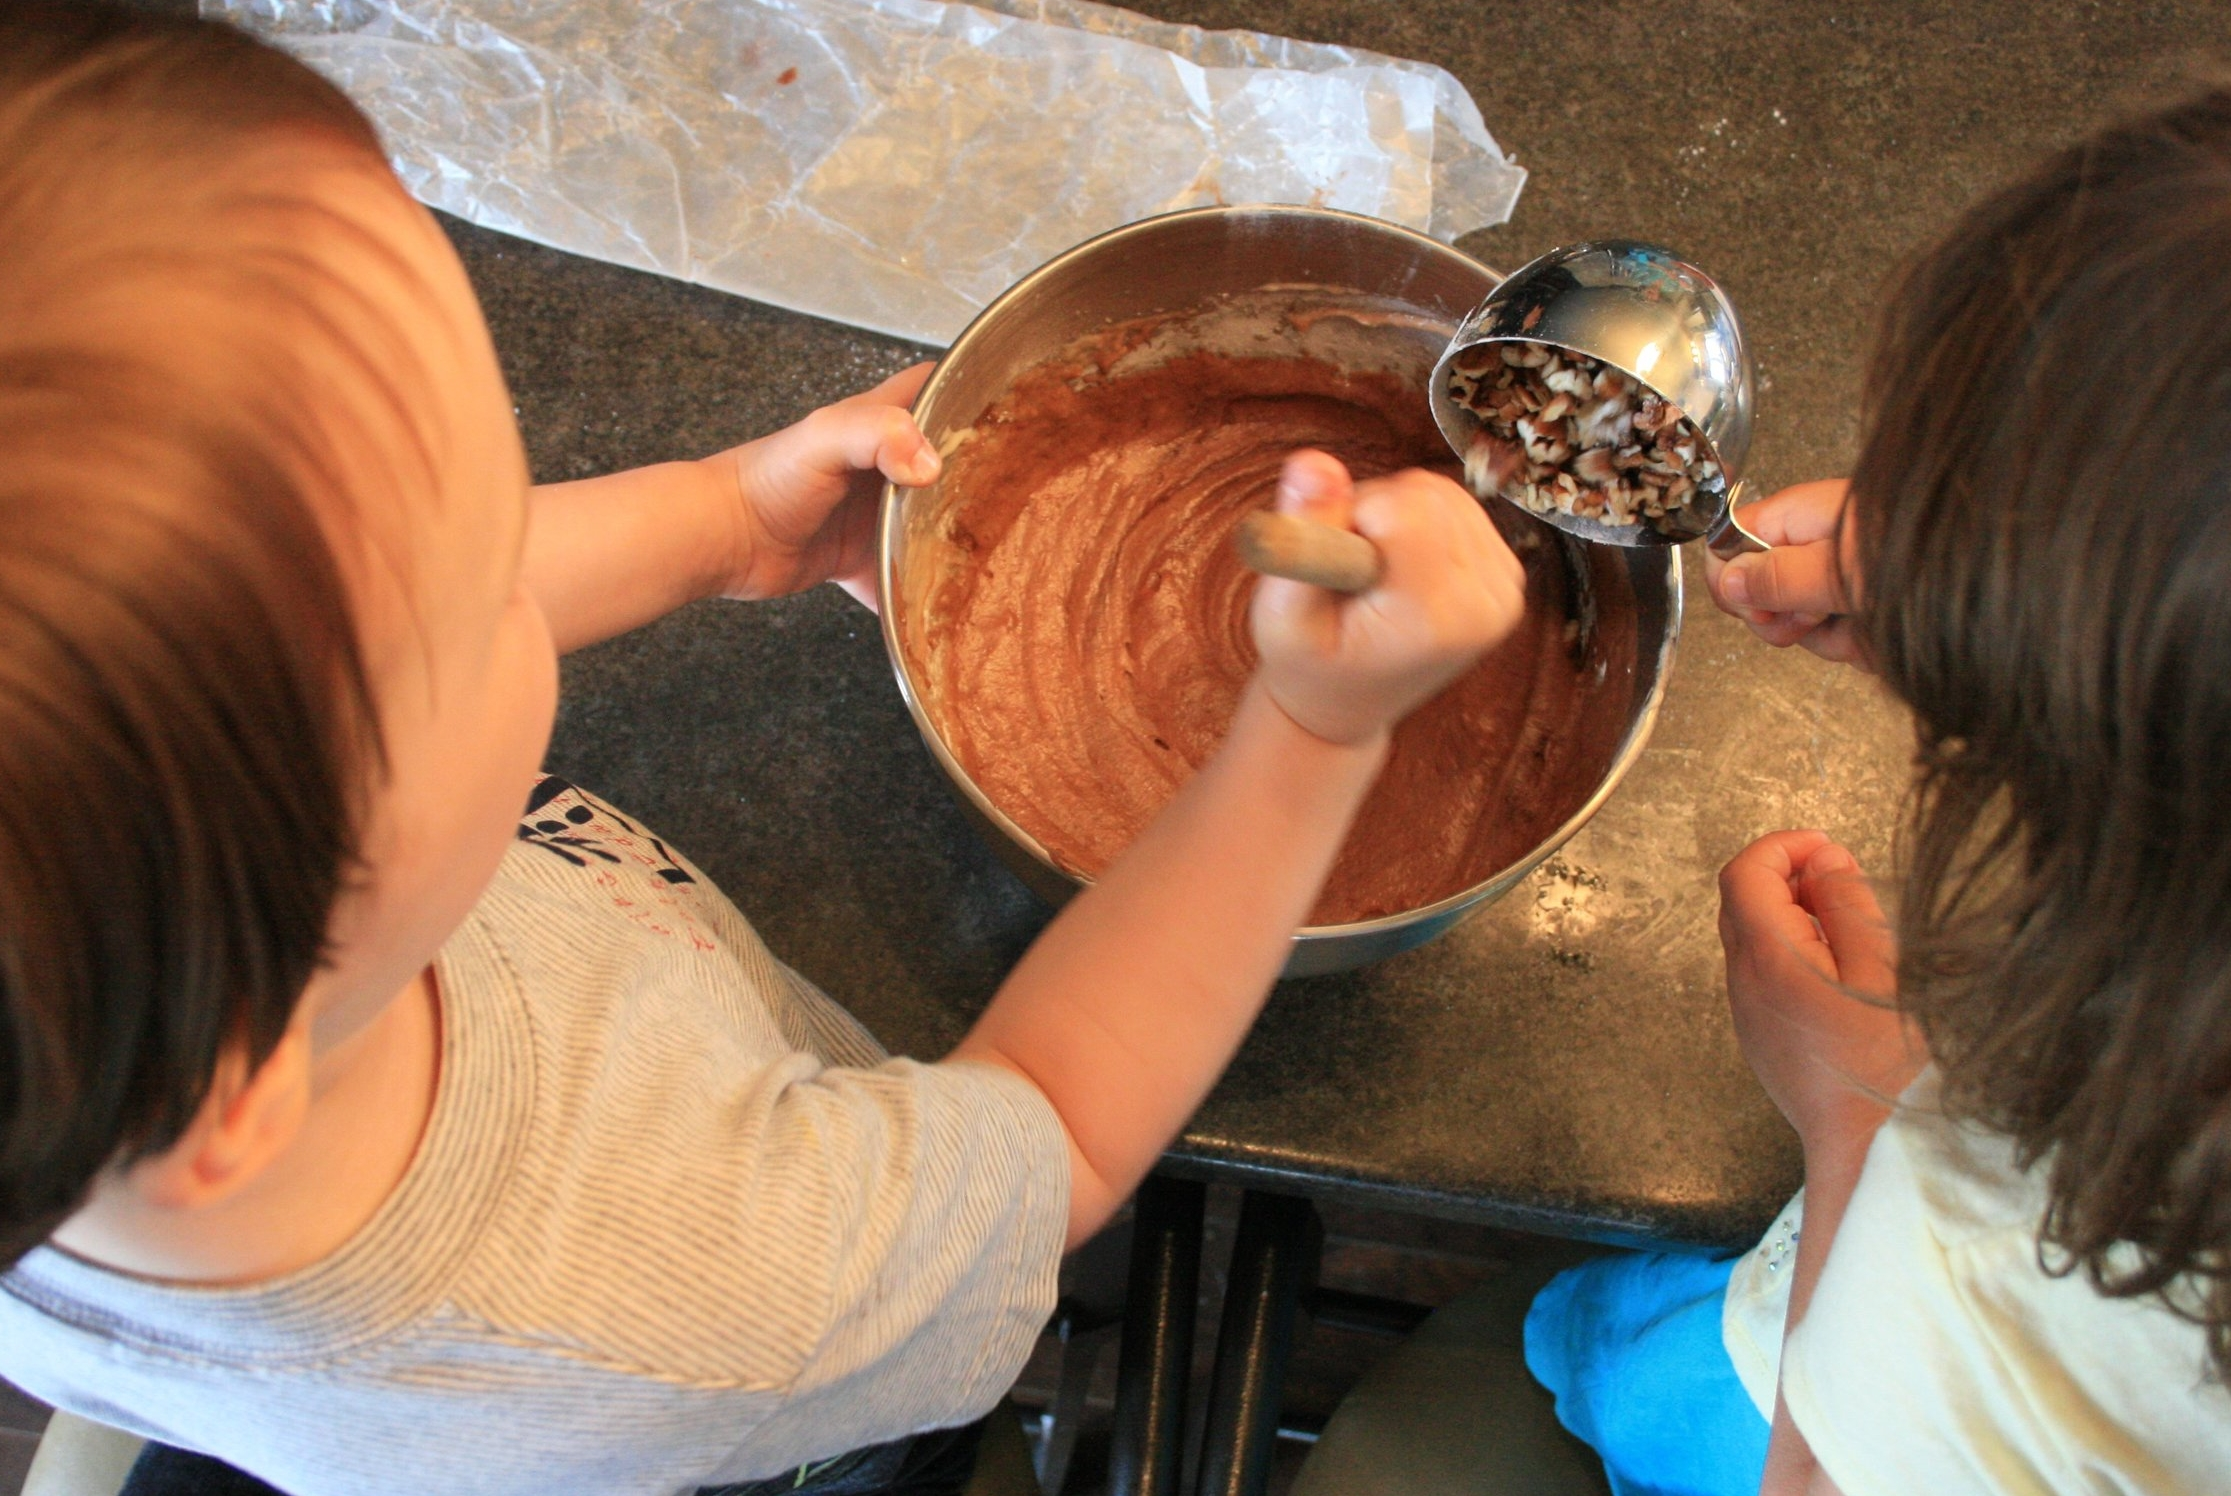 Five-year-old cousins working together: adding pecans to the brownie batter.